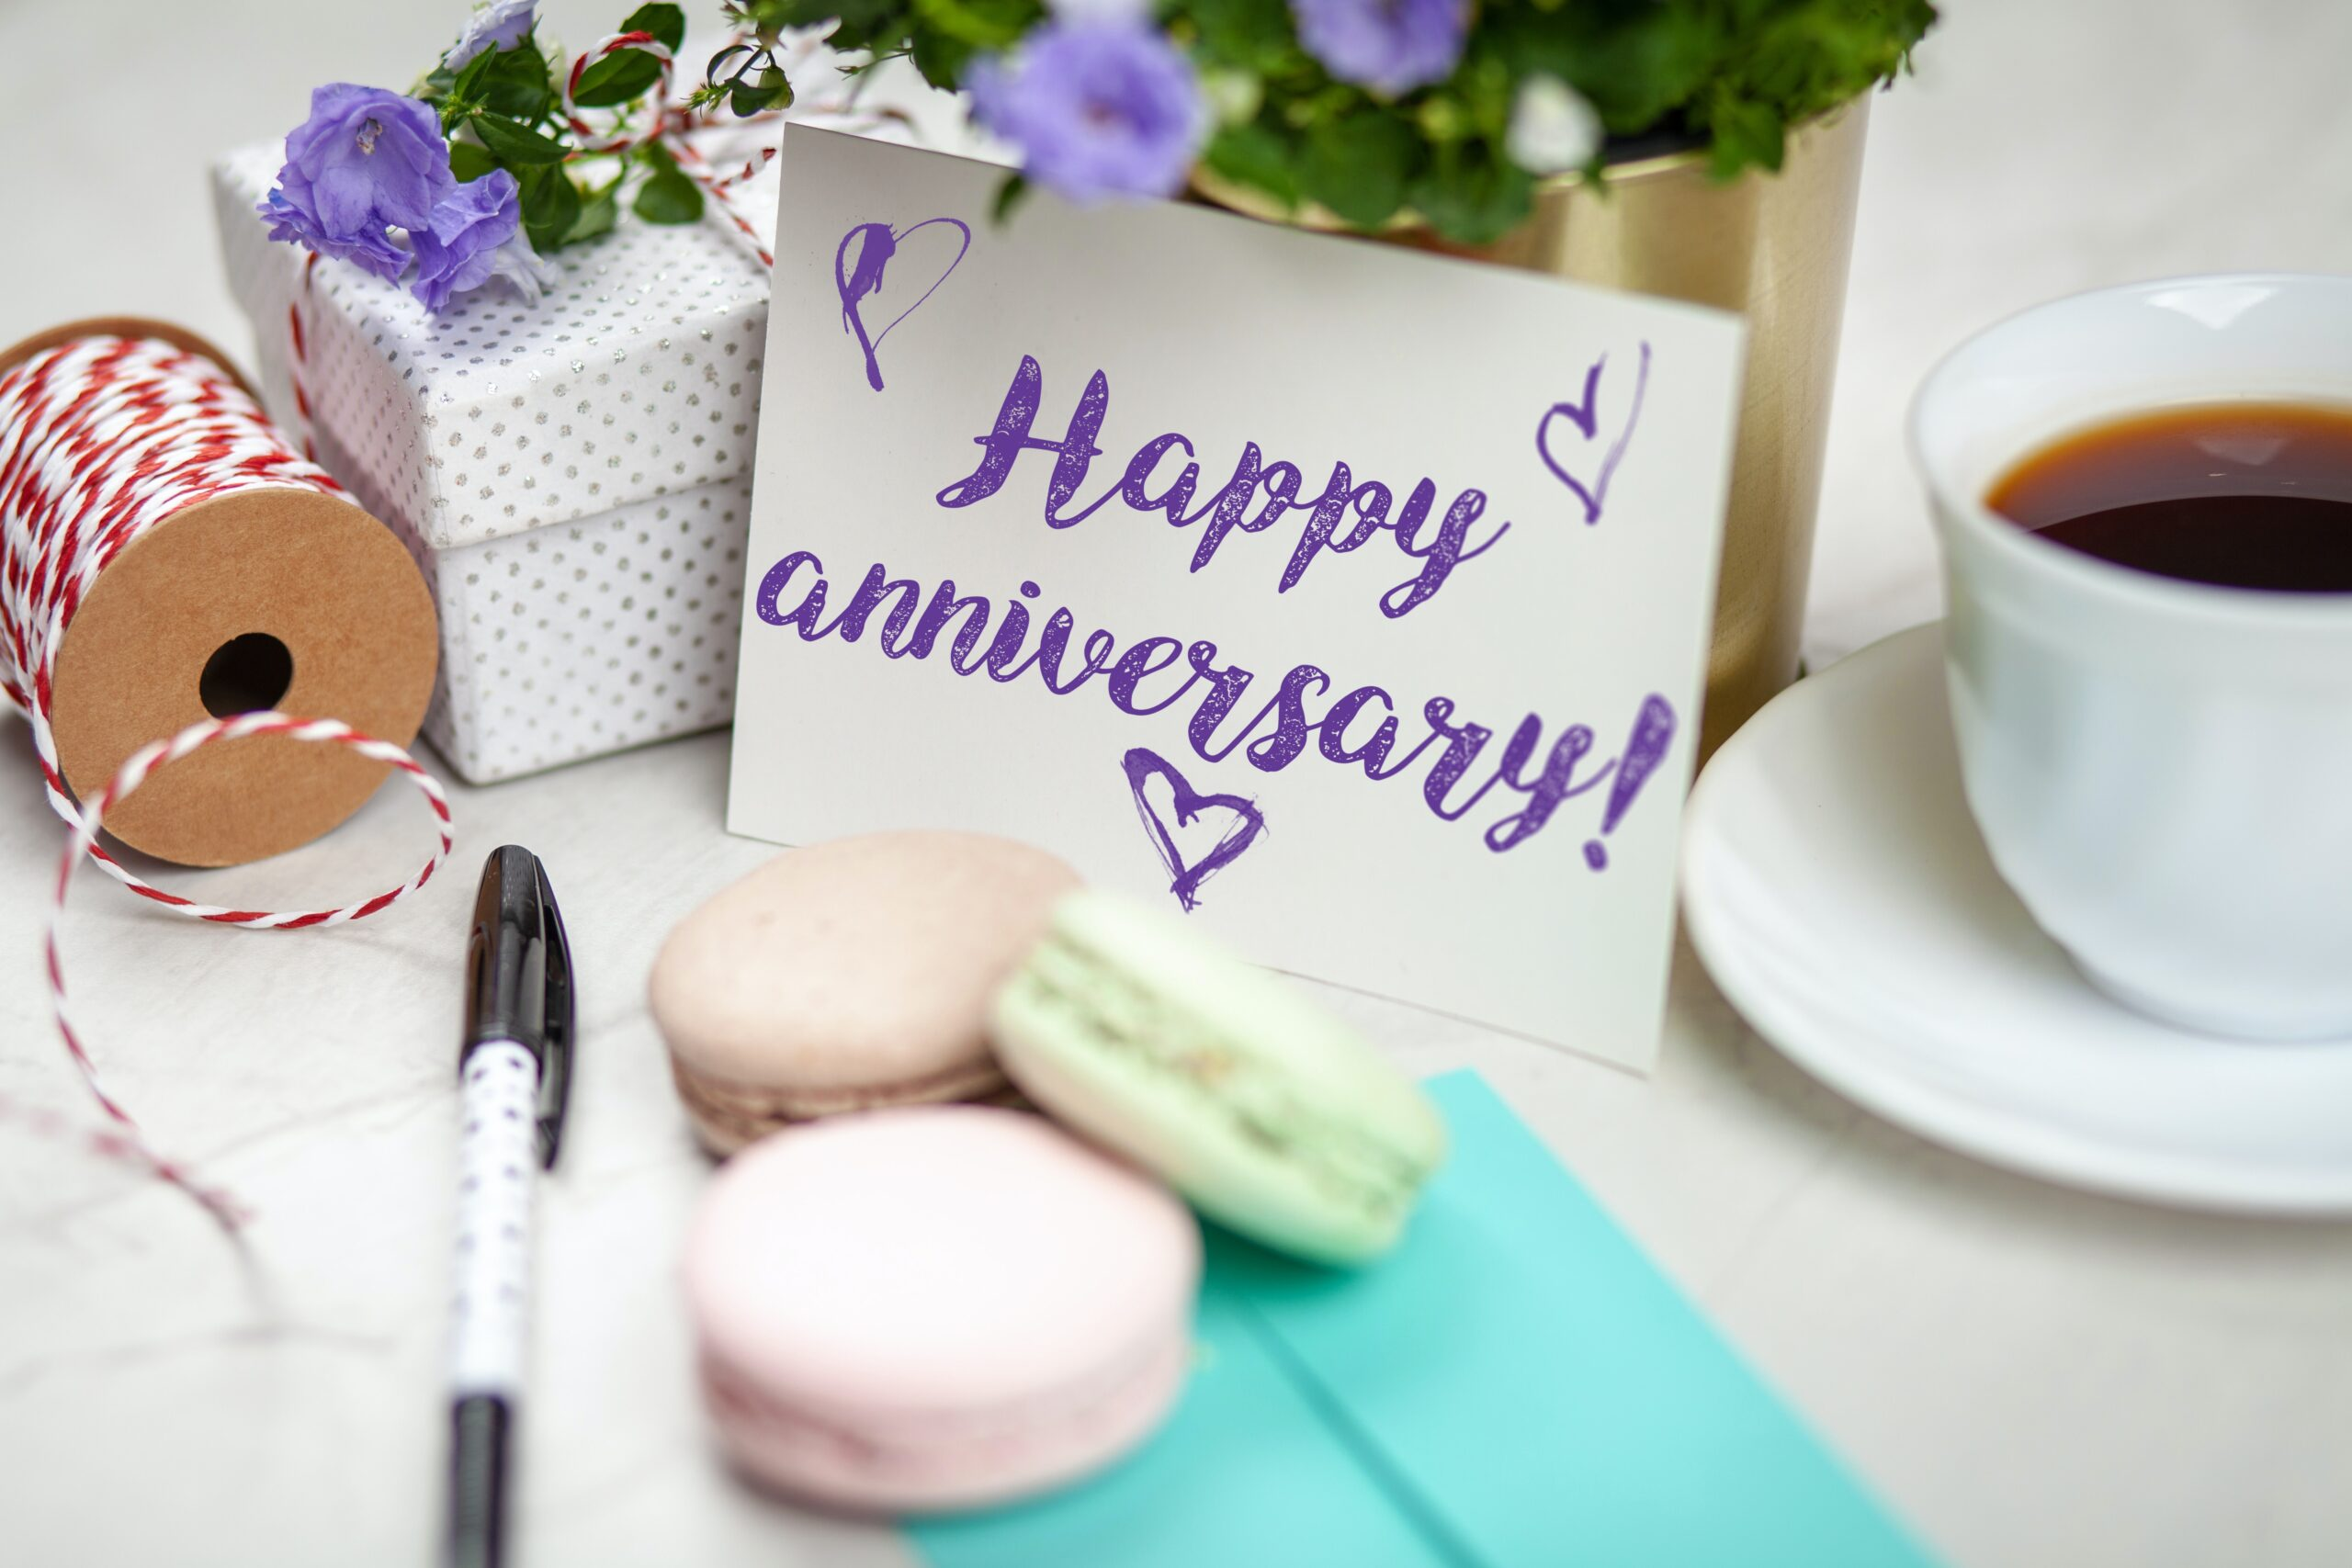 Fantastic Gift Ideas for Your Next Anniversary